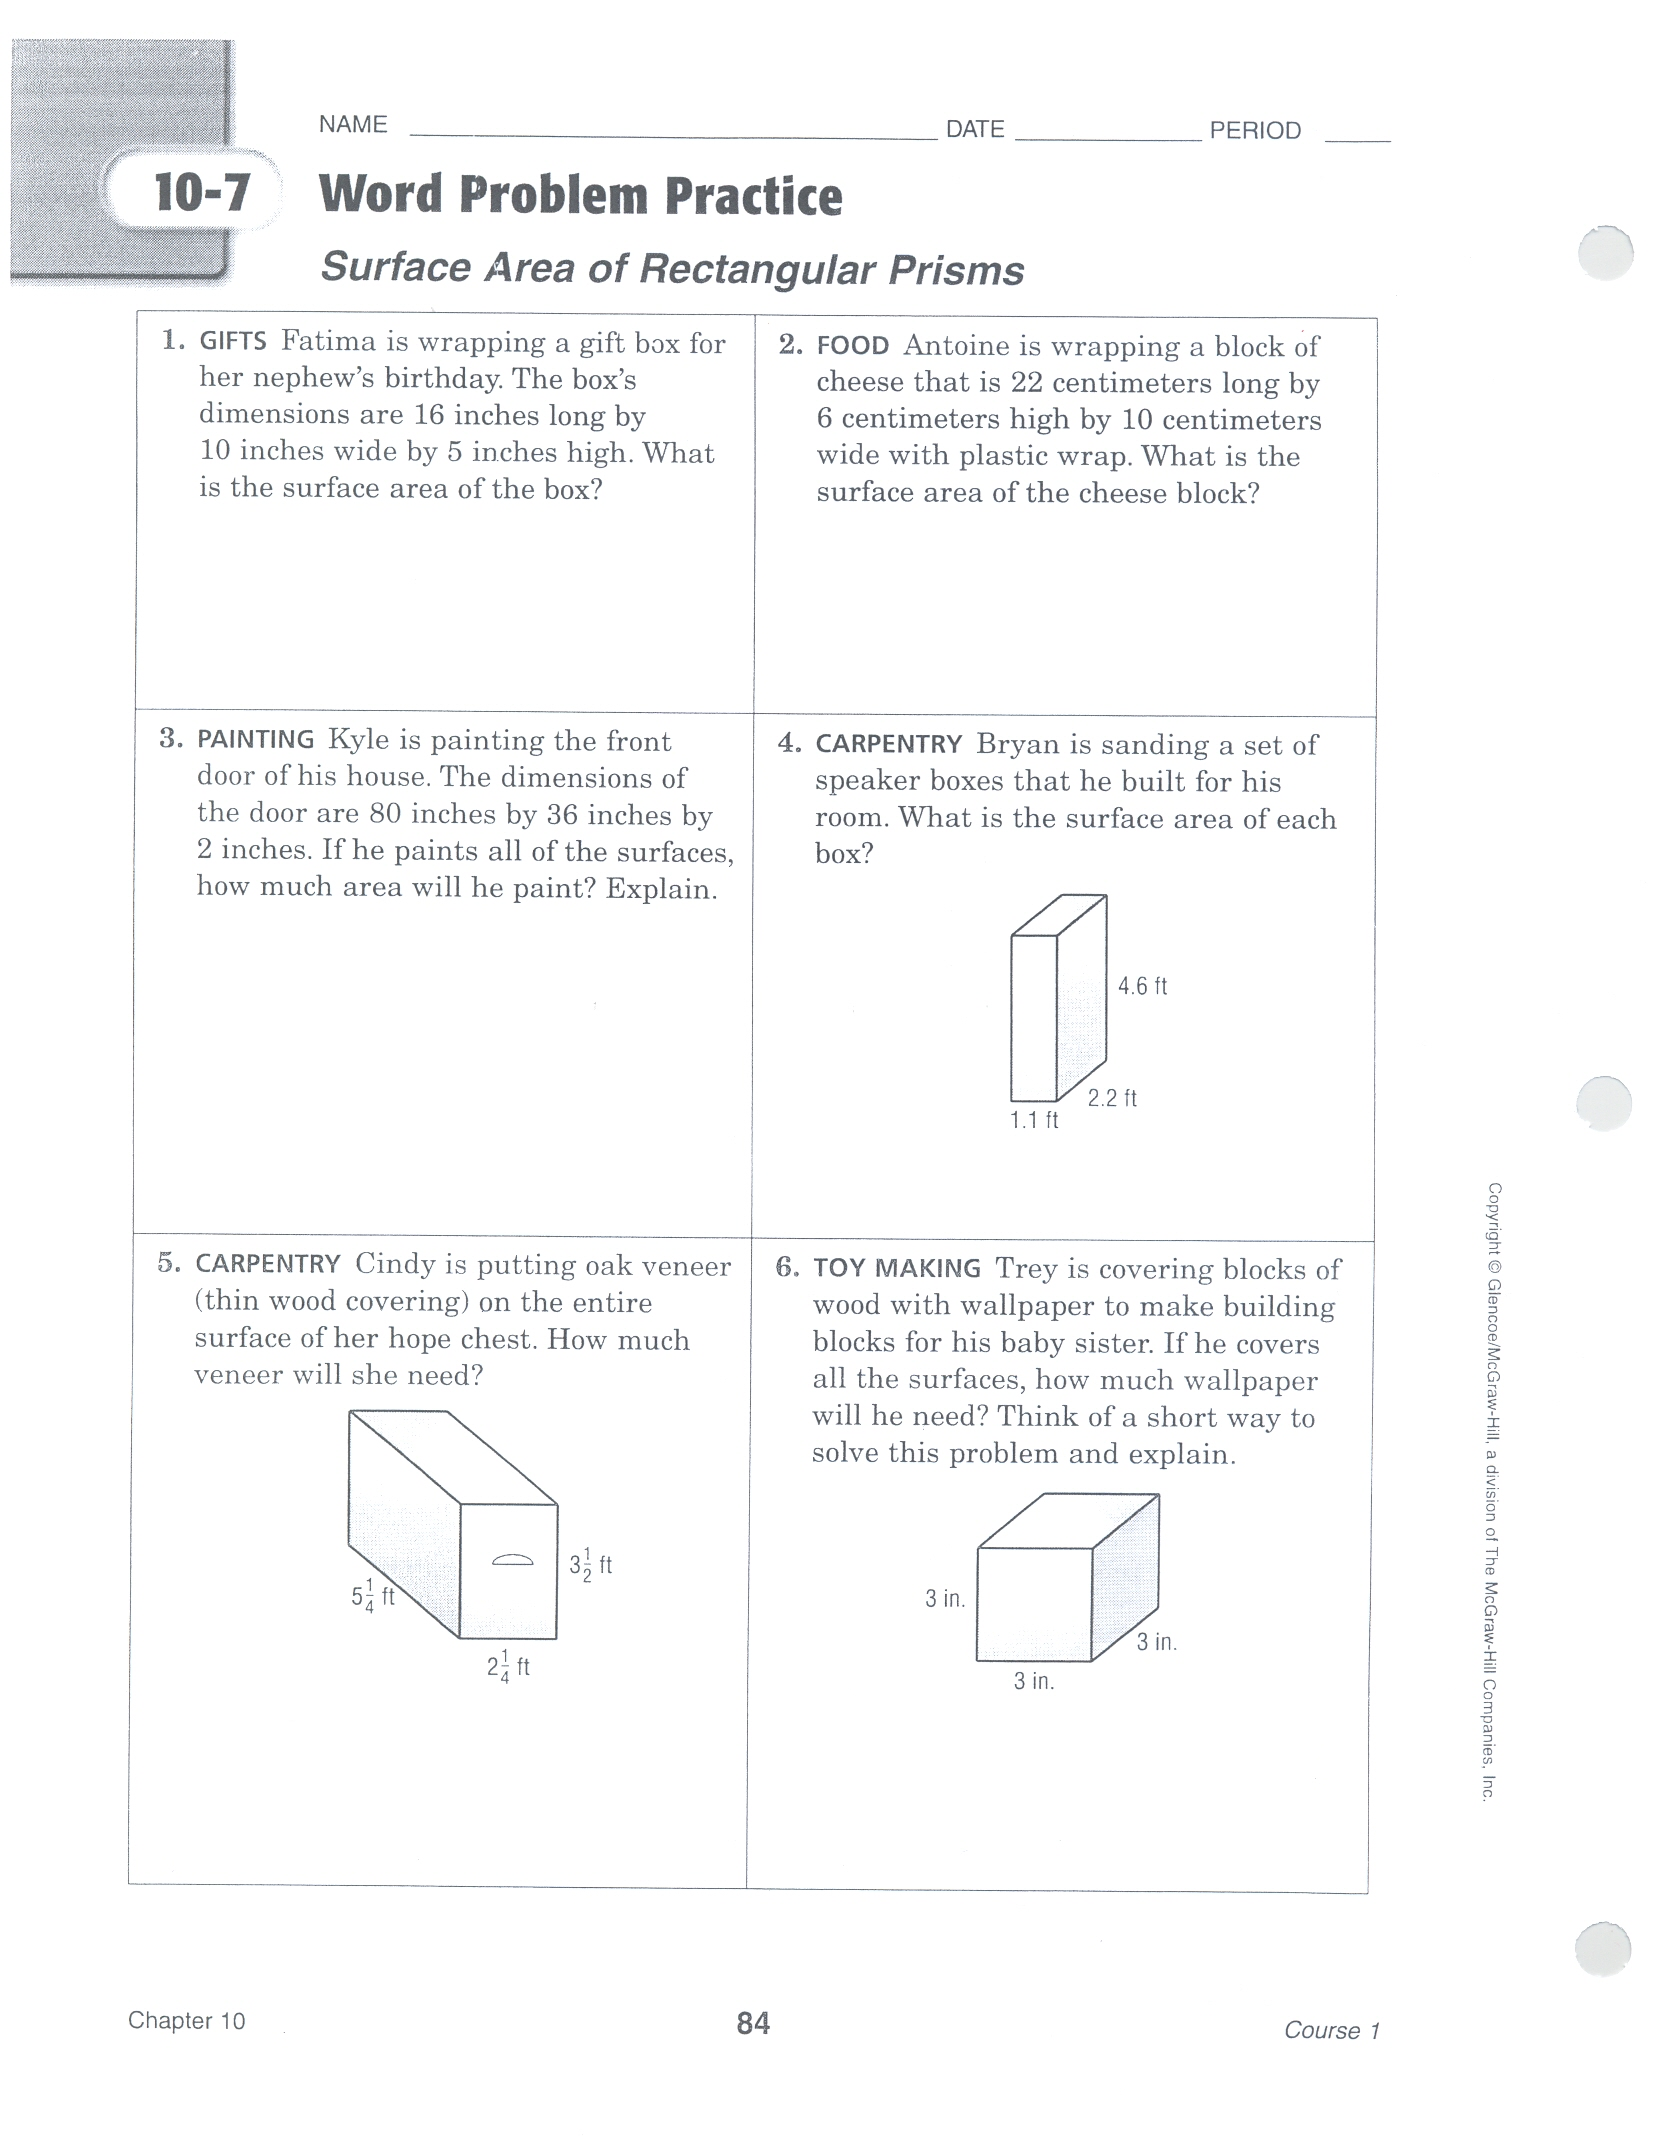 worksheet Surface Area Word Problems unit 10 6th grade math uploads388238822625surface area word problems0001 jpg